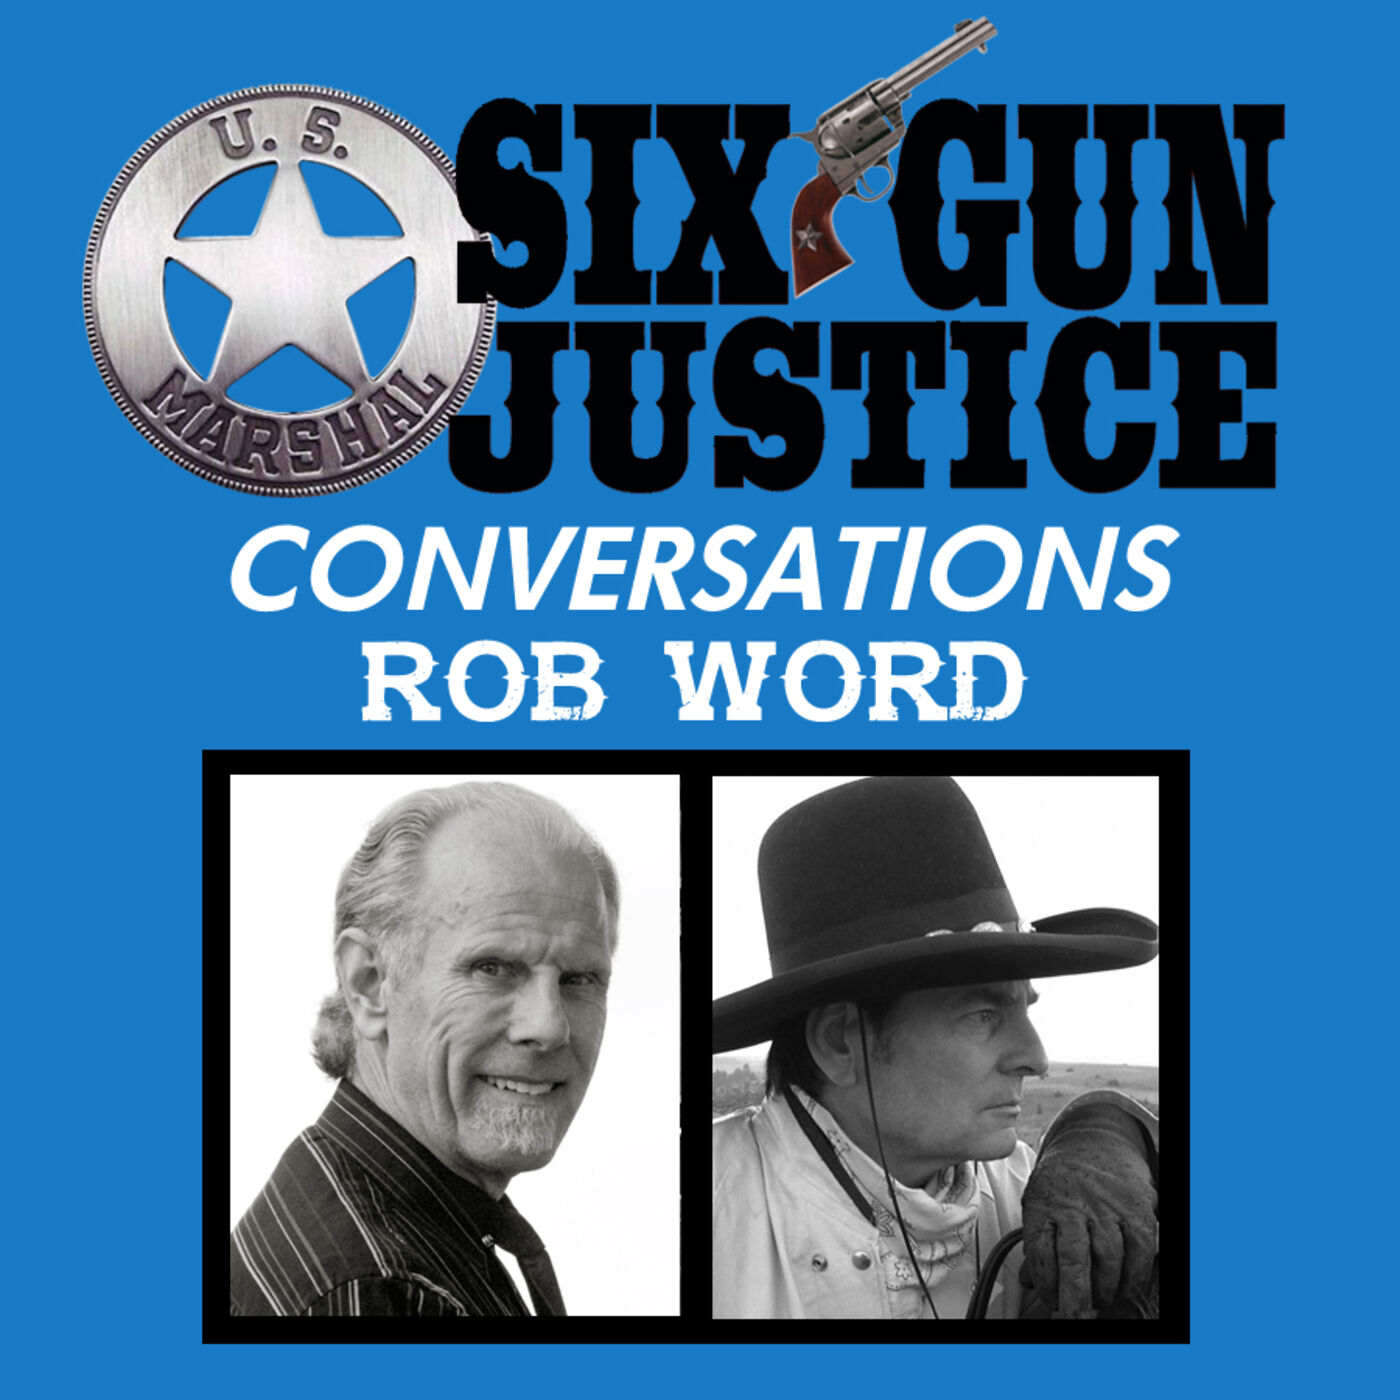 SIX-GUN JUSTICE CONVERSATIONS—ROB WORD